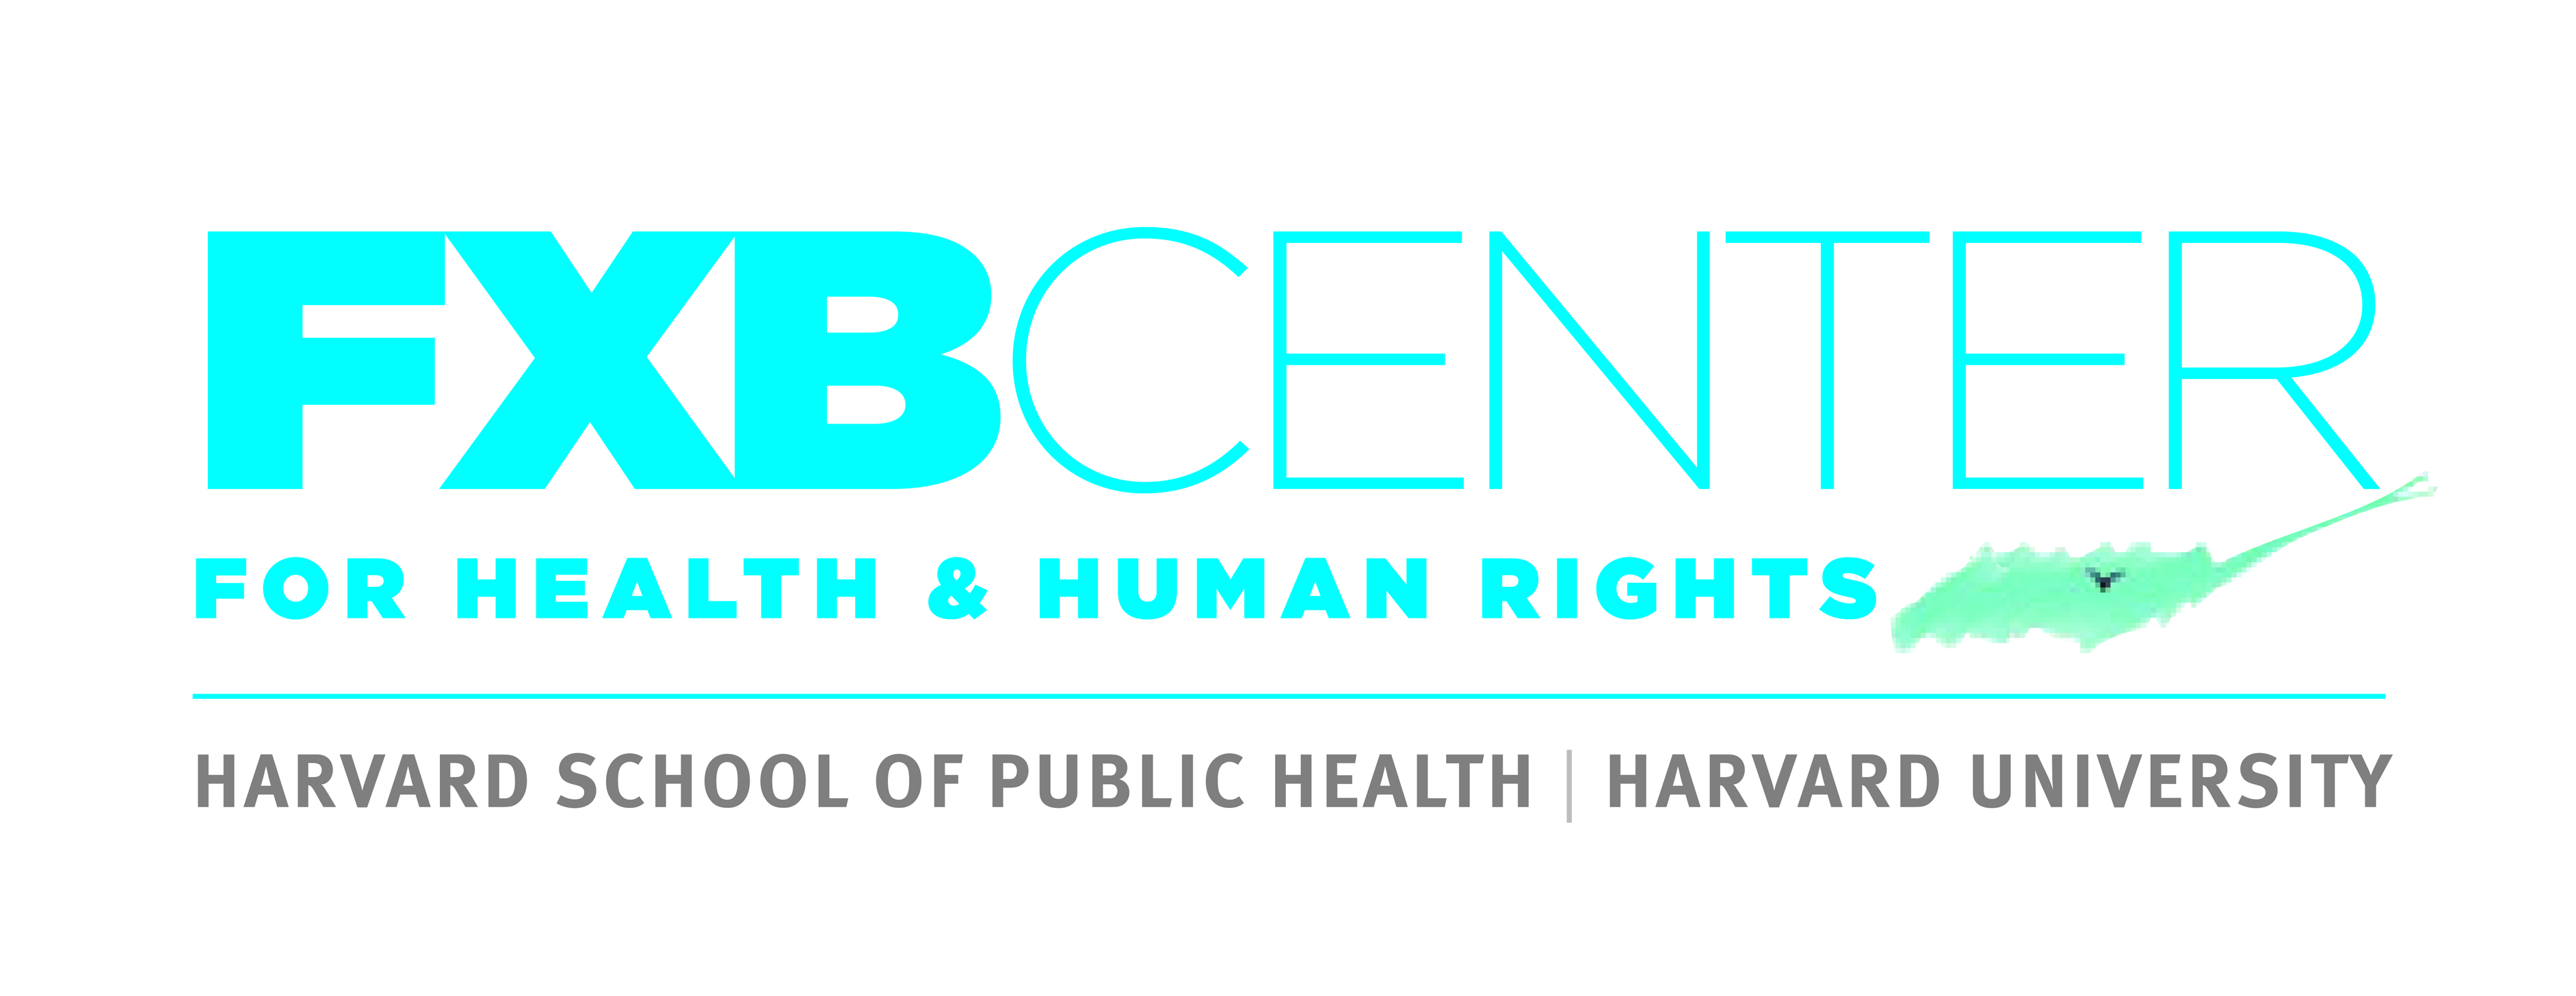 FXB Center for Health and Human Rights, Harvard School of Public Health, logo